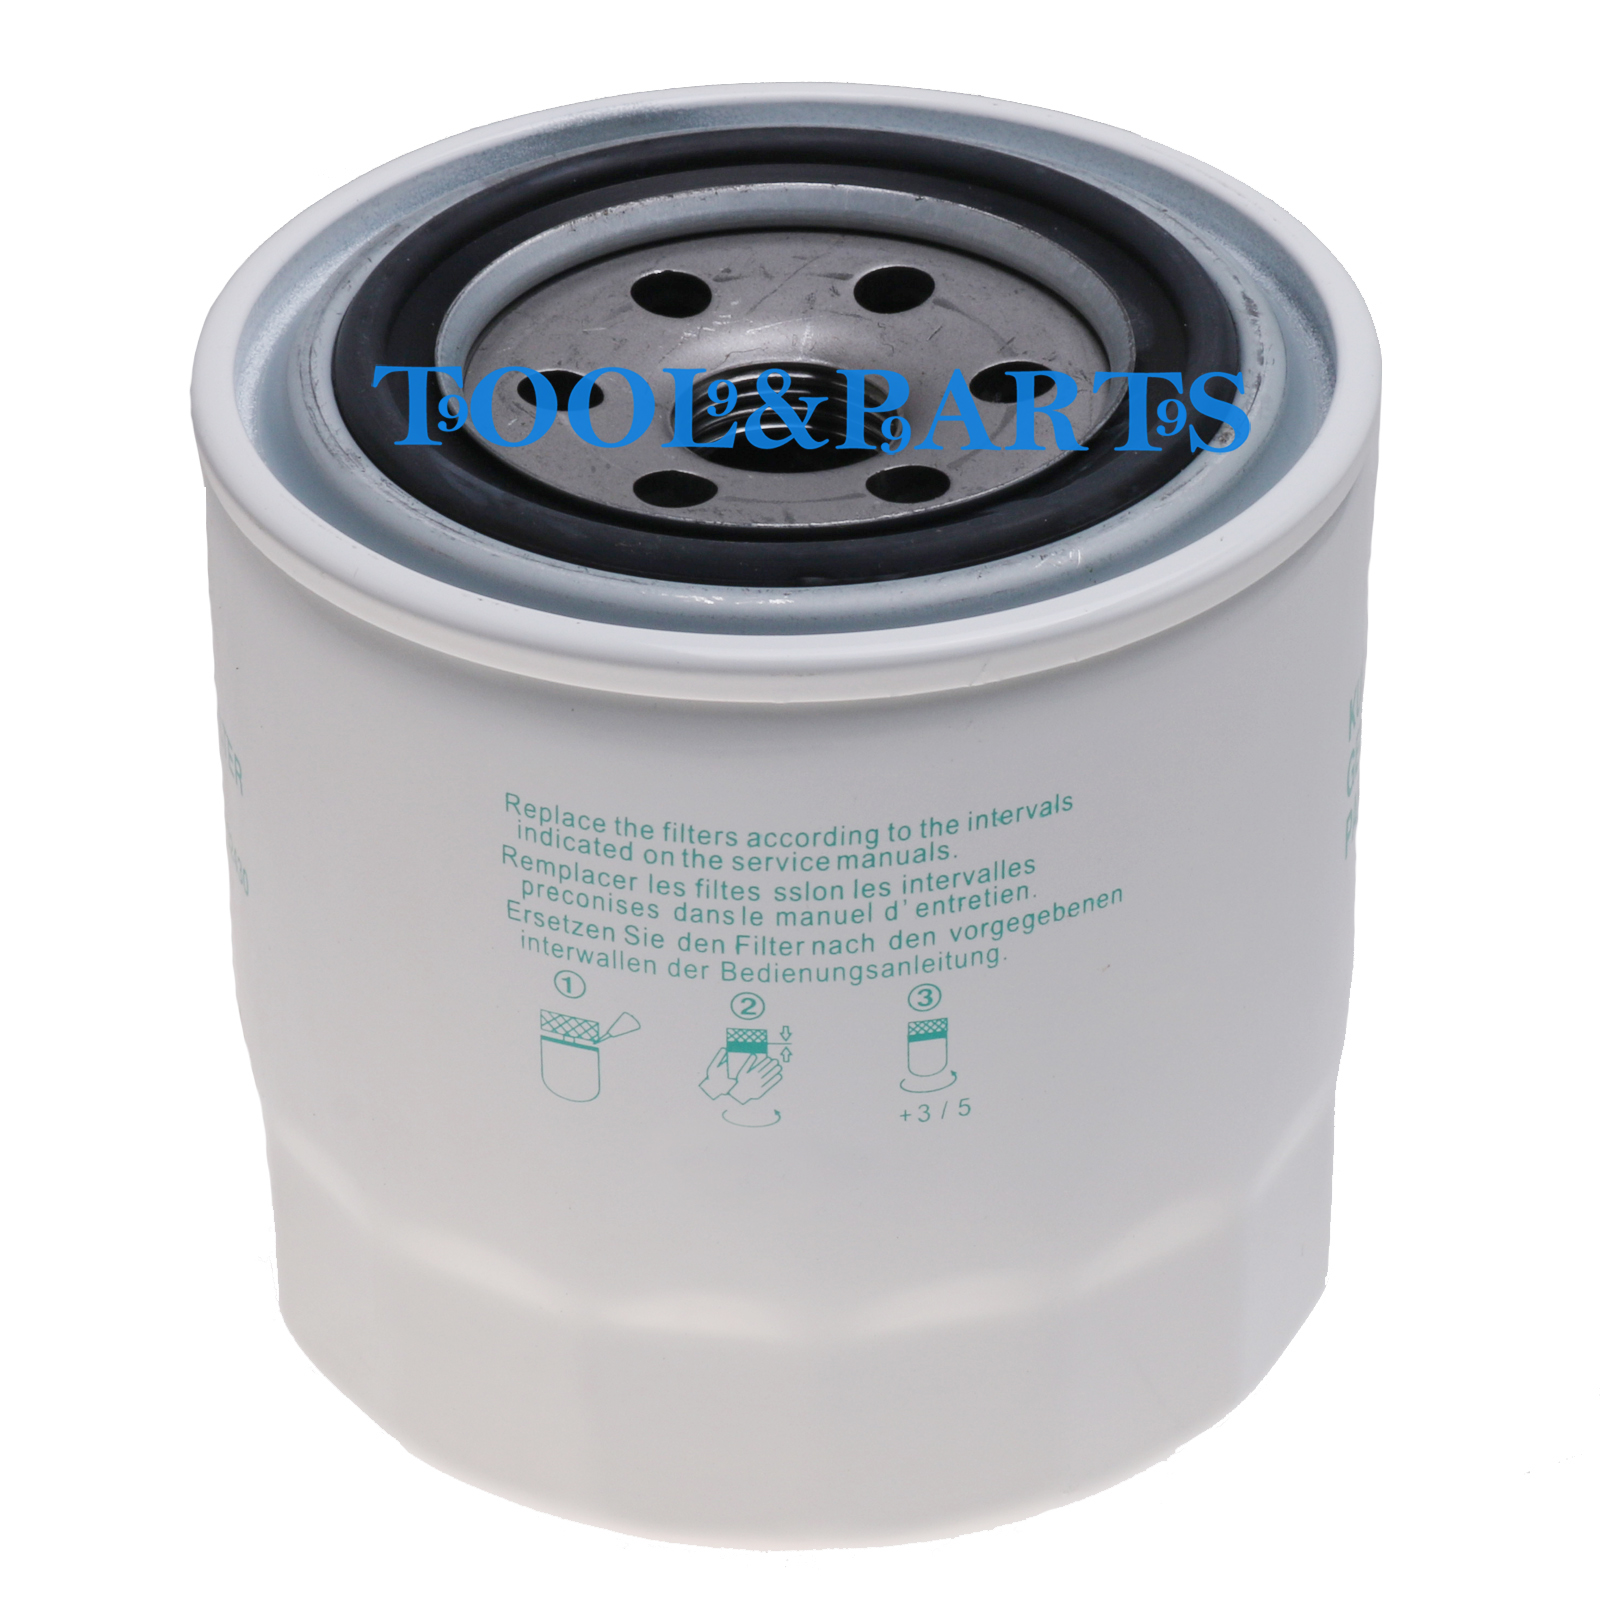 Details about New Oil Filter for Bobcat T110 T140 T180 T190 T550 T590